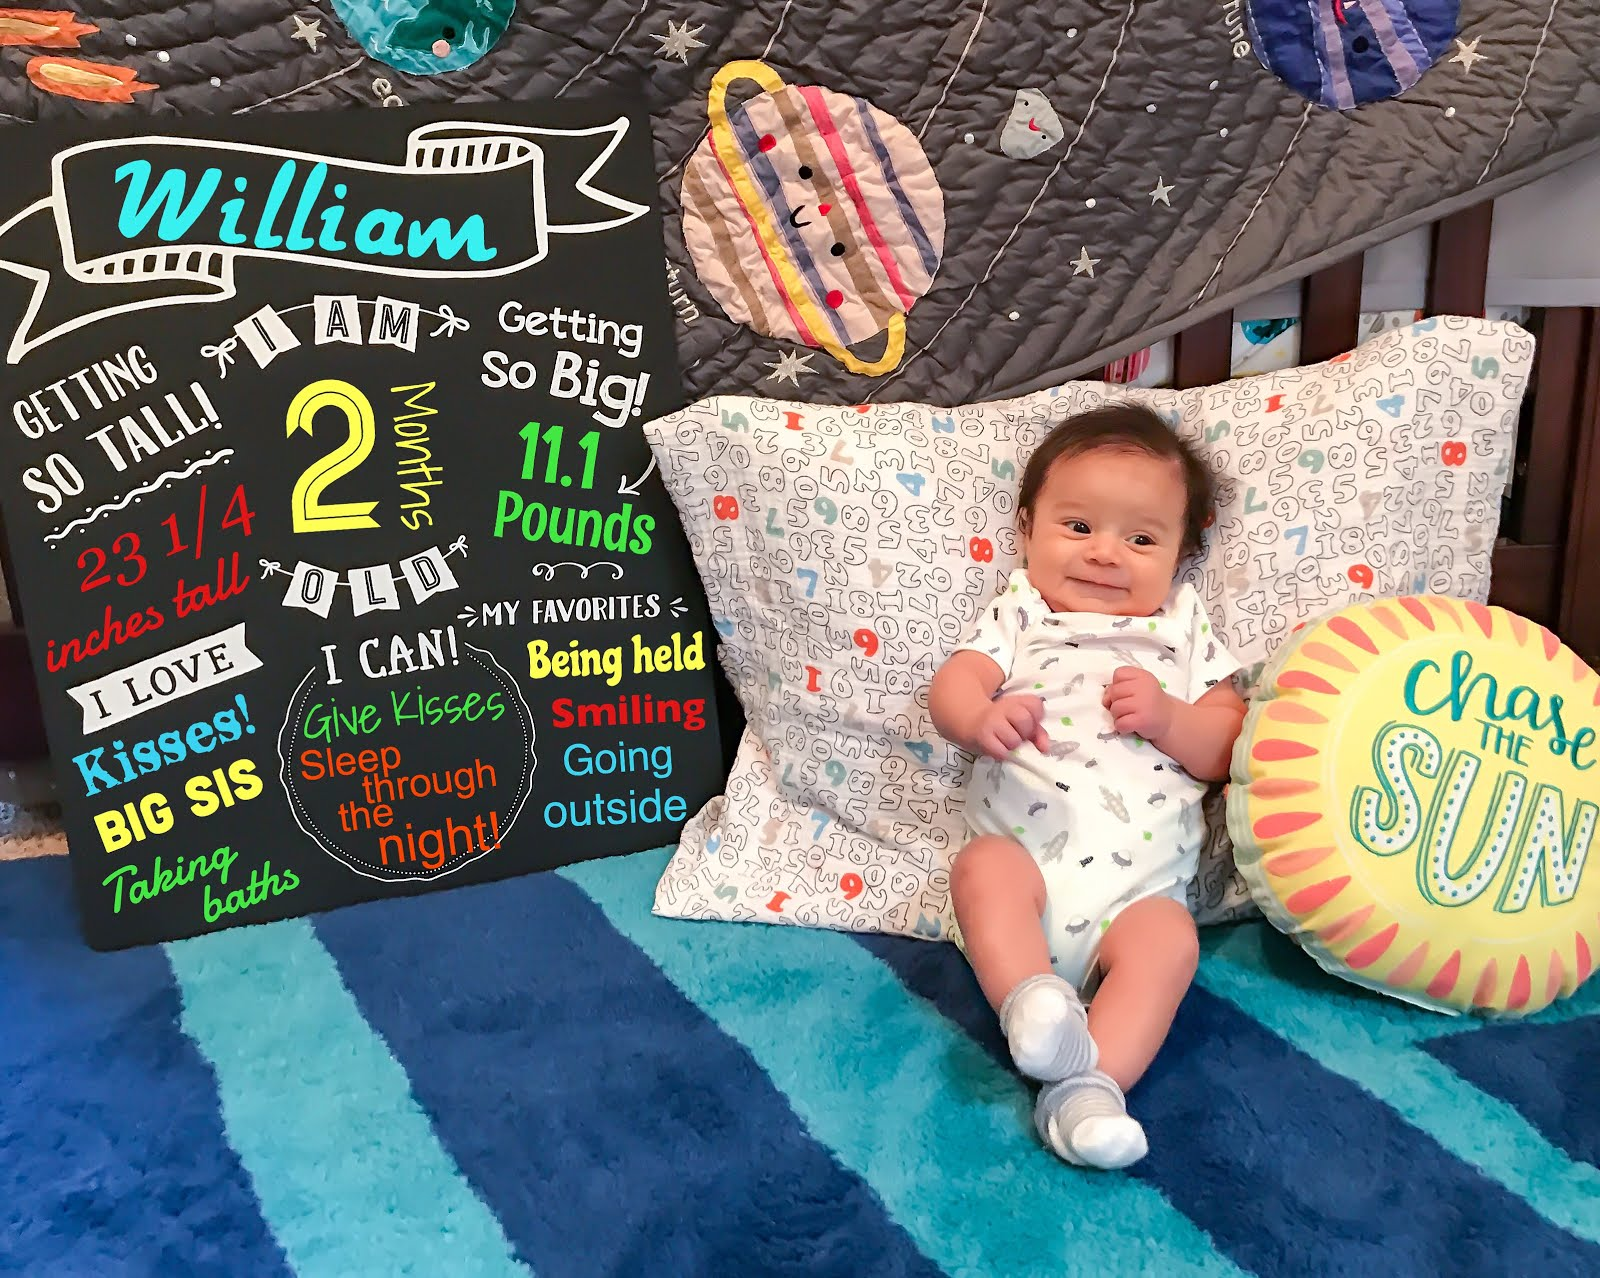 2 Months of William